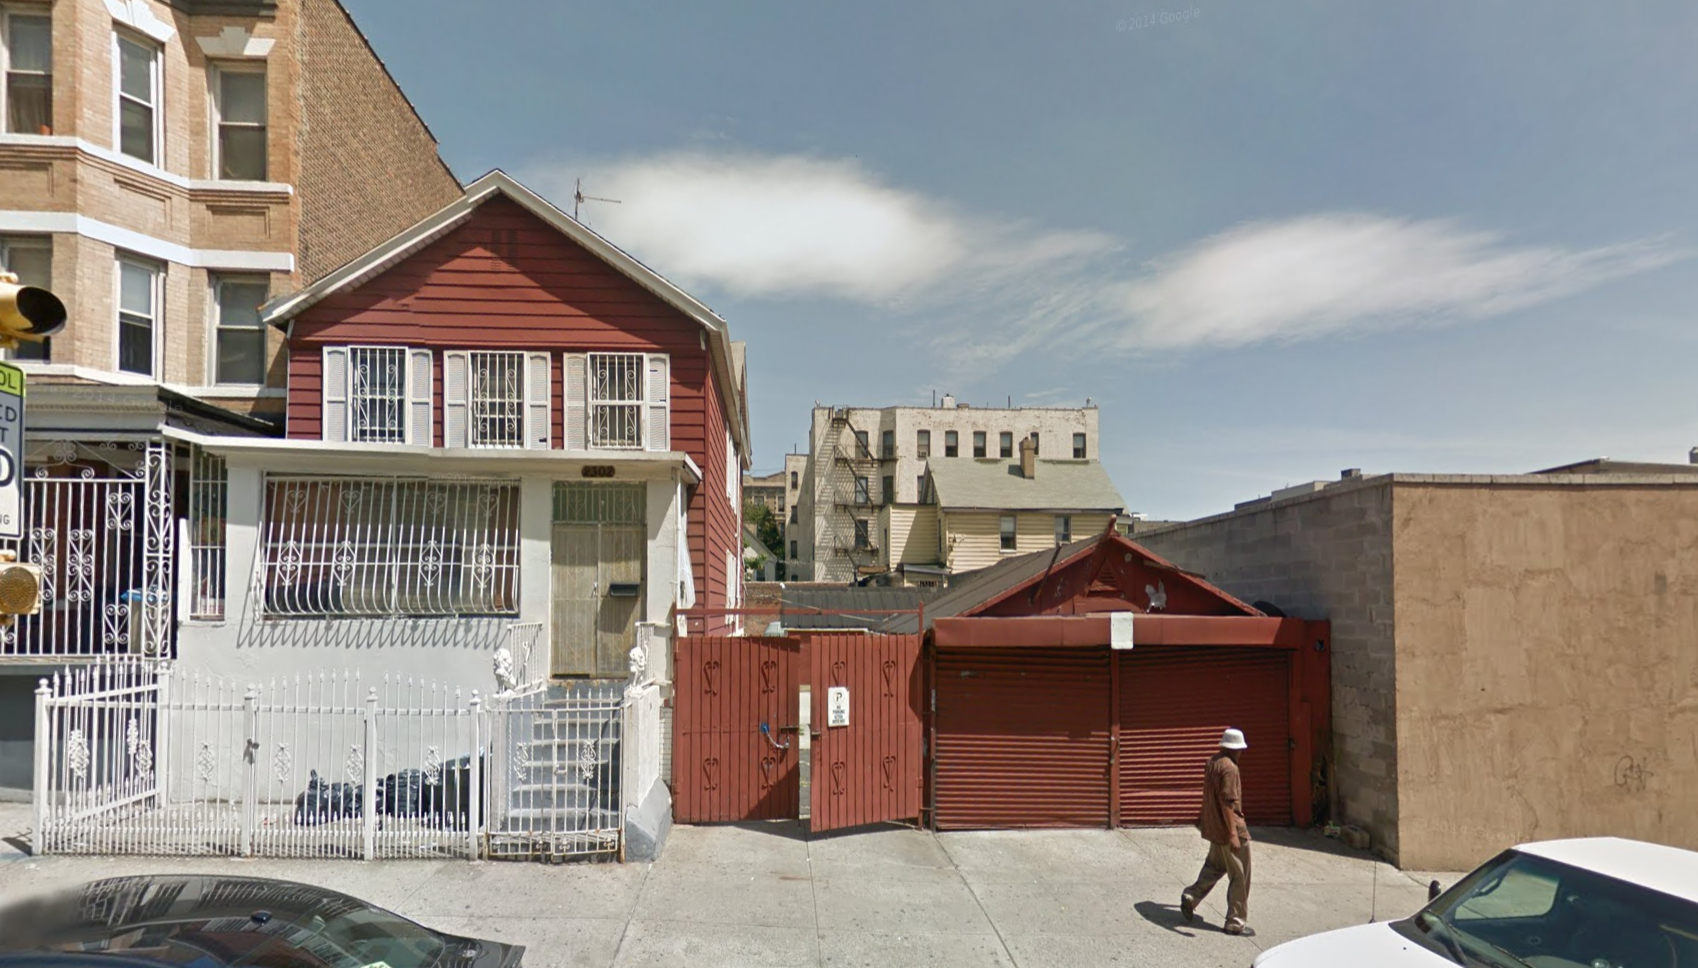 2302 Morris Avenue, image via Google Maps